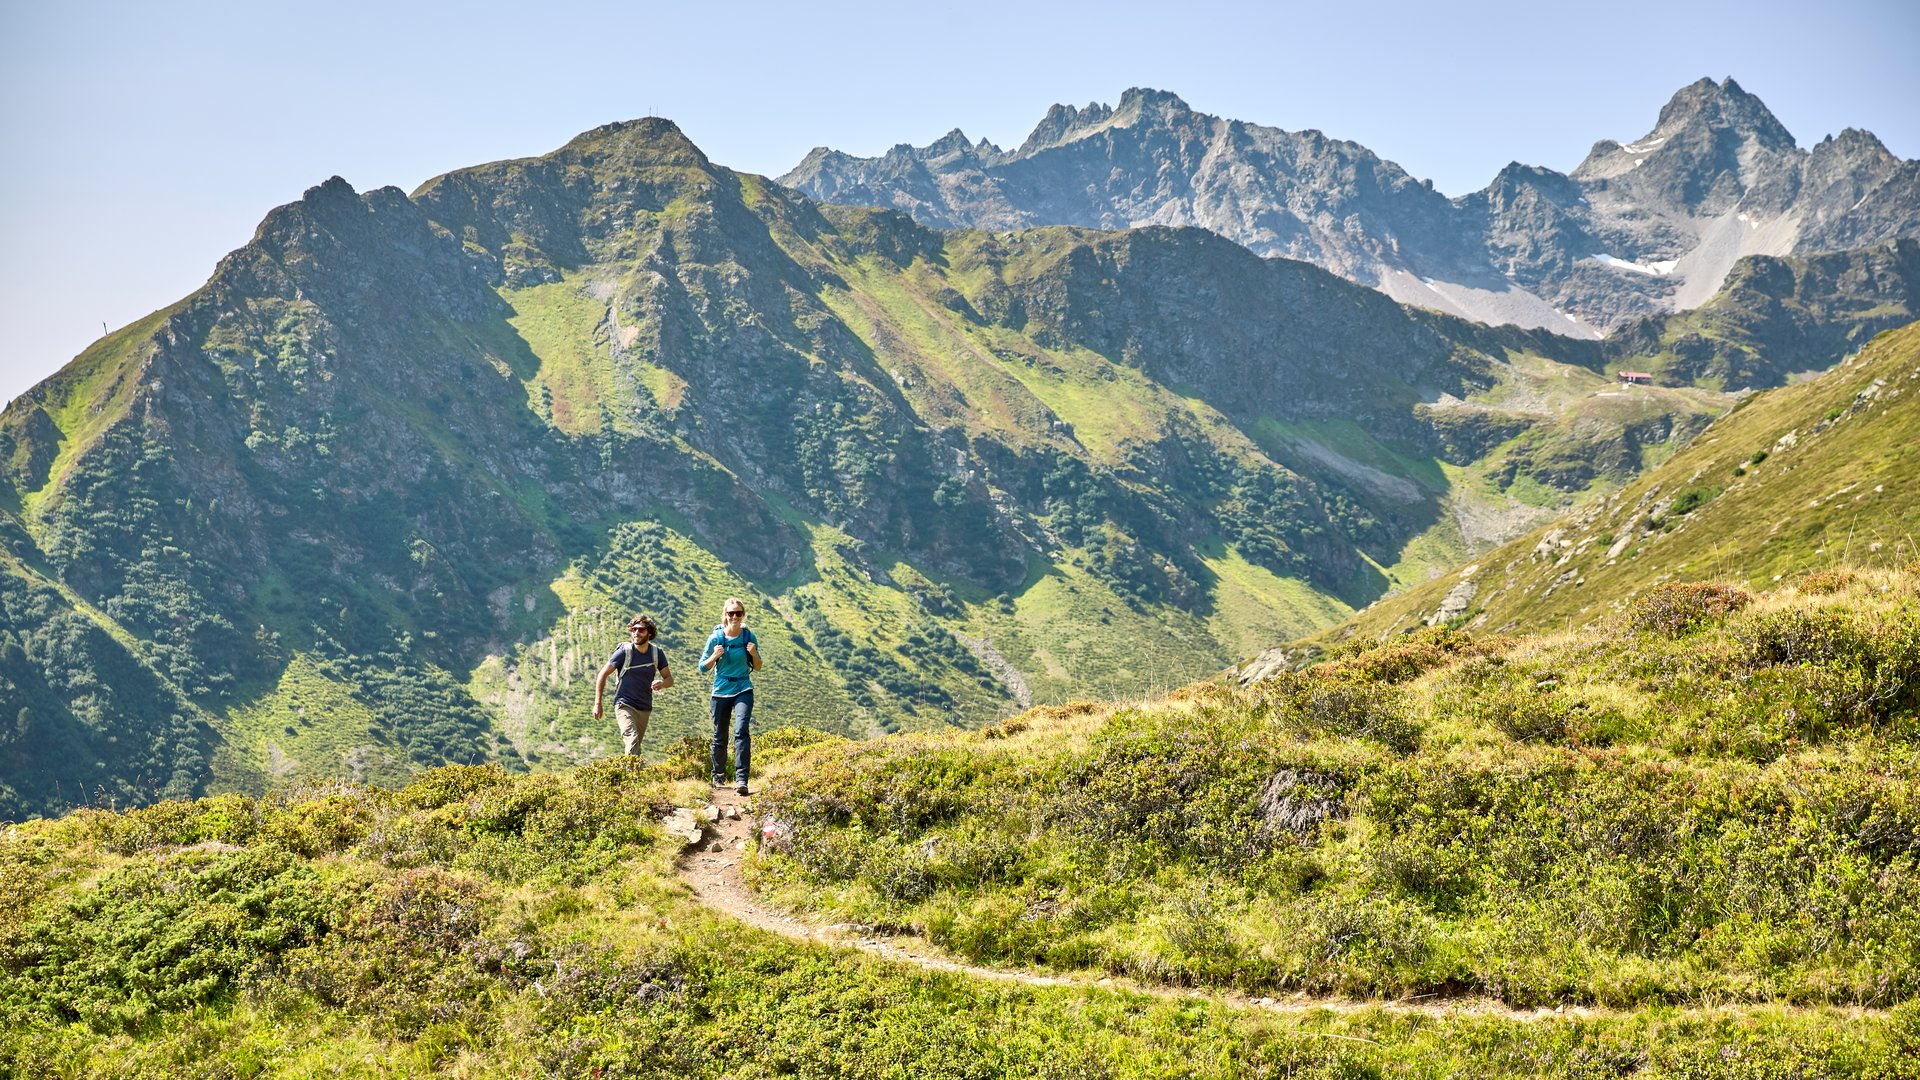 Holidaymakers enjoy the hiking trails in the mountain landscape Kappl